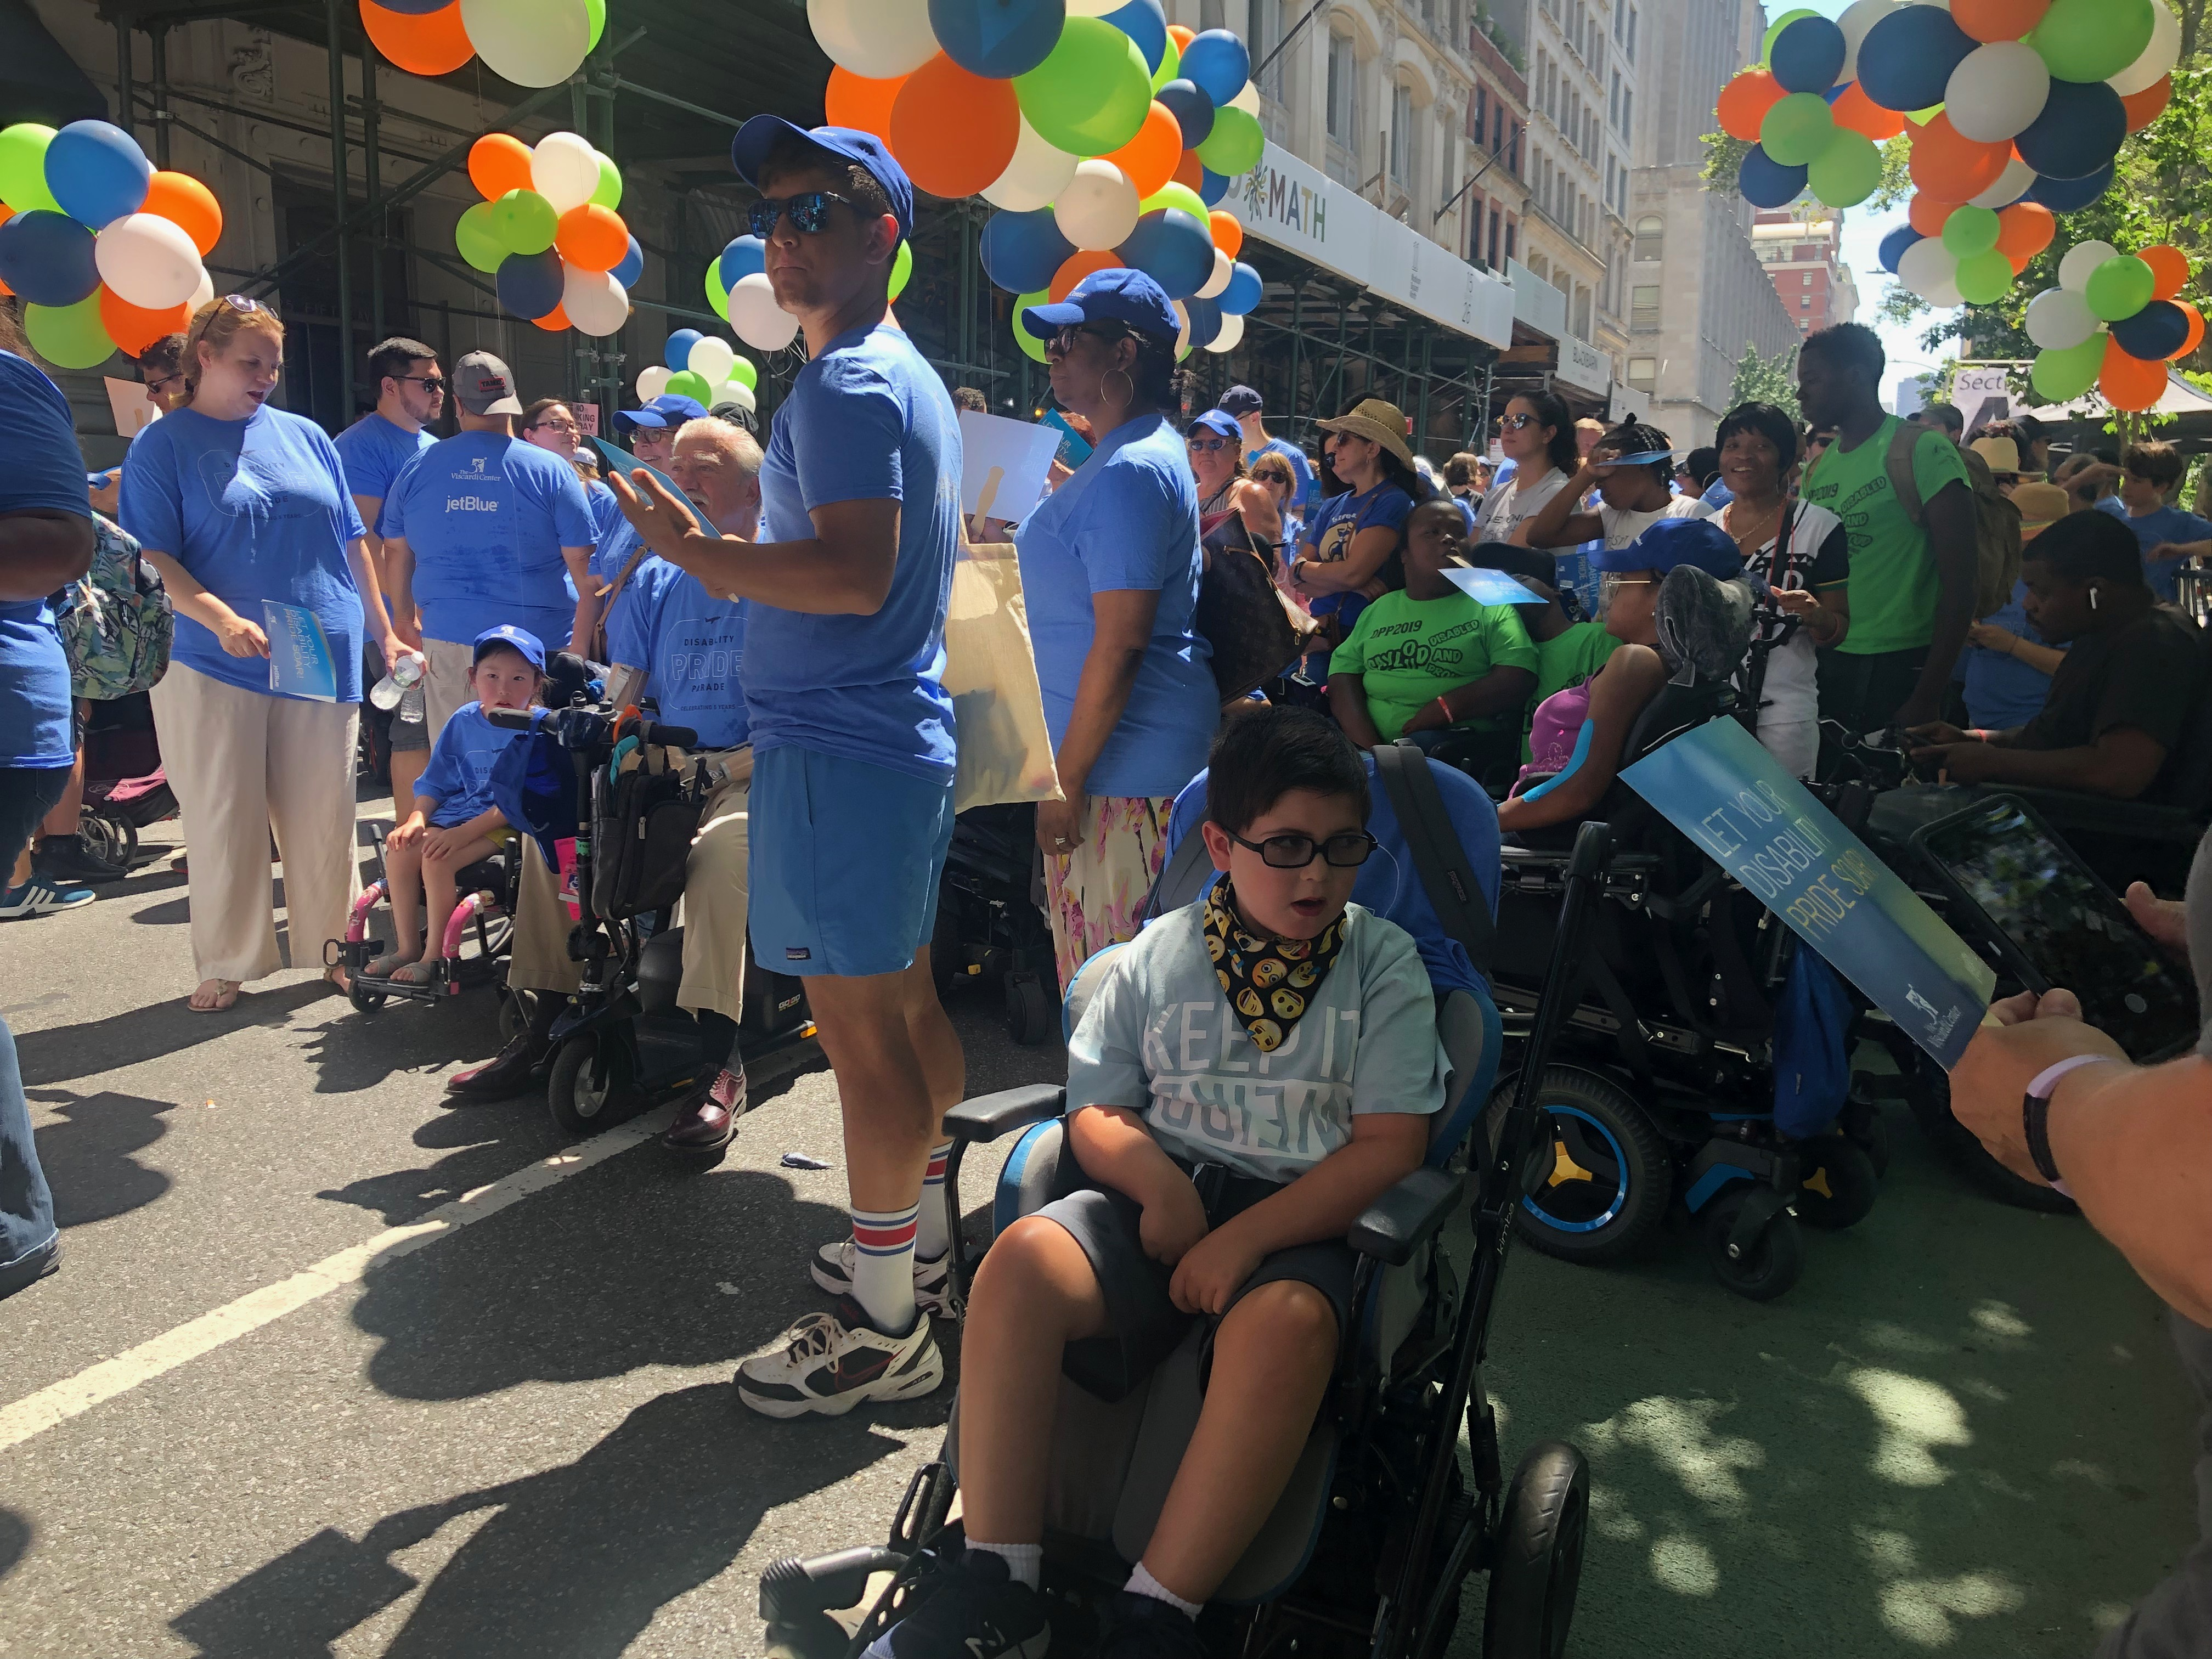 A young boy in mobility device getting ready to march in fifth annual disability pride parade, New York.